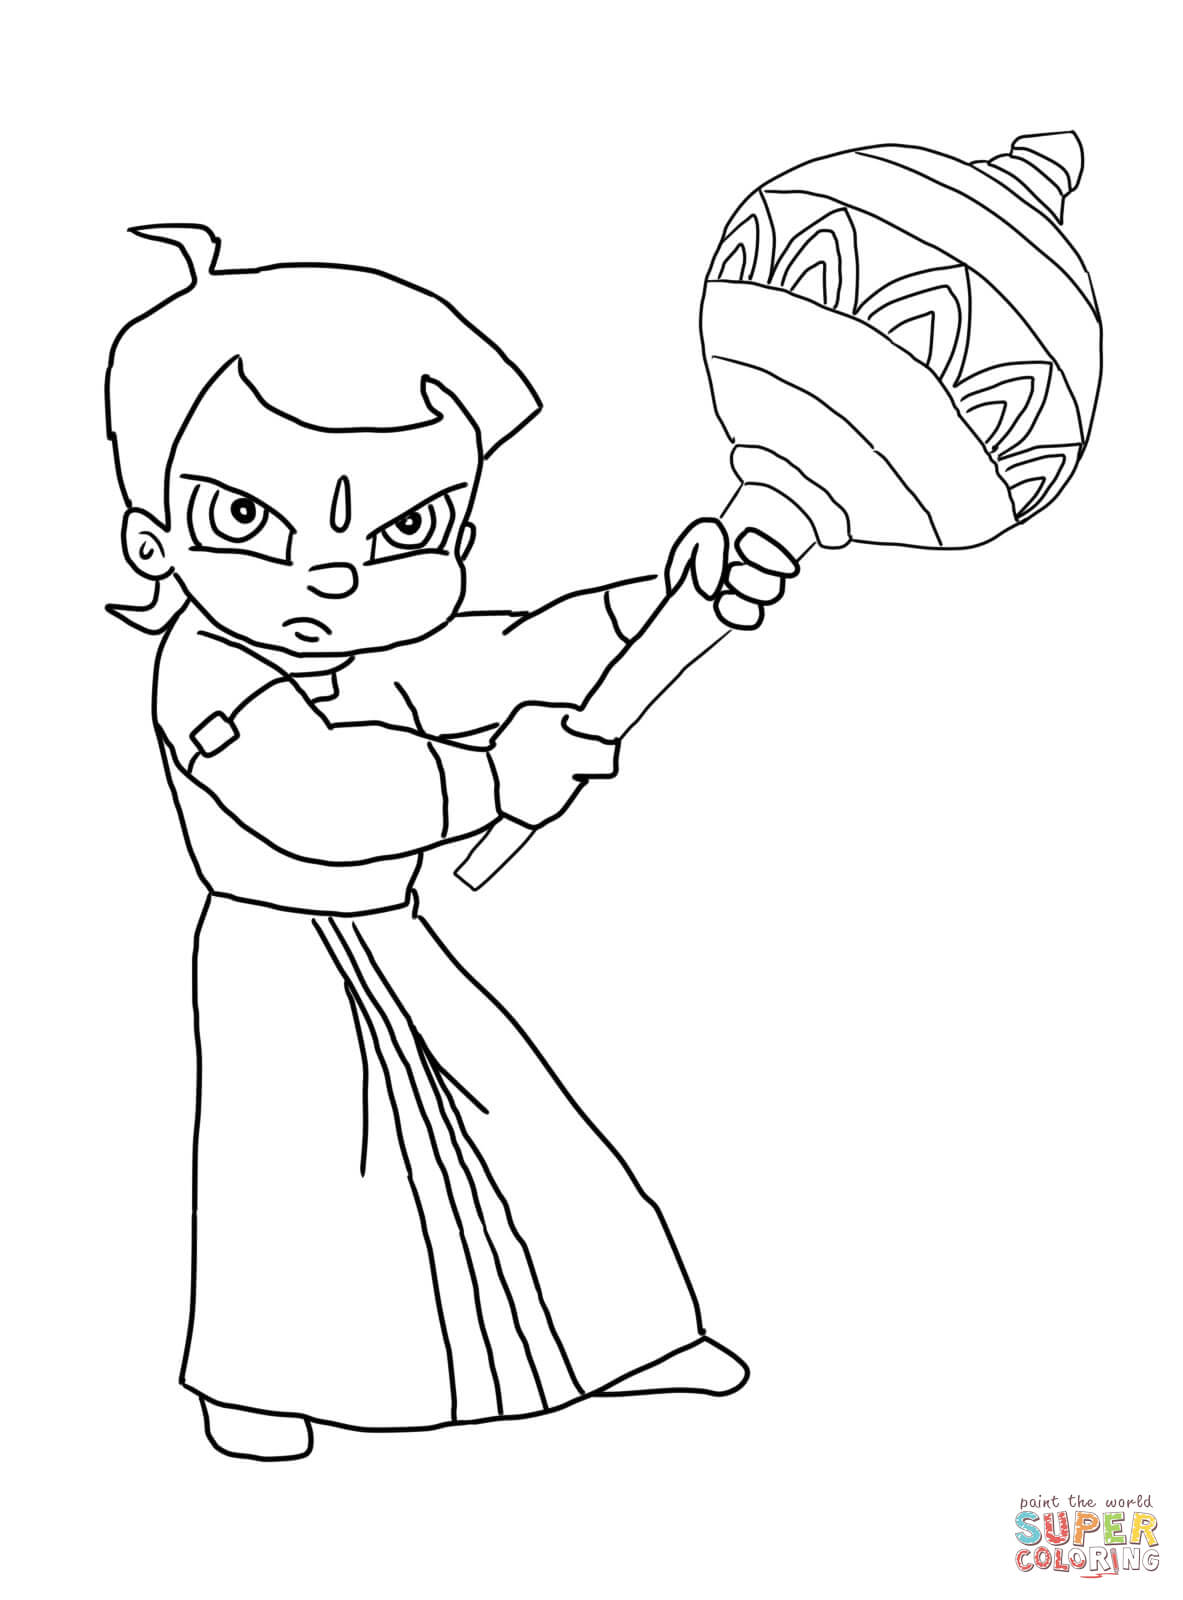 Chhota Bheem And The Curse Of Damyaan Coloring Page